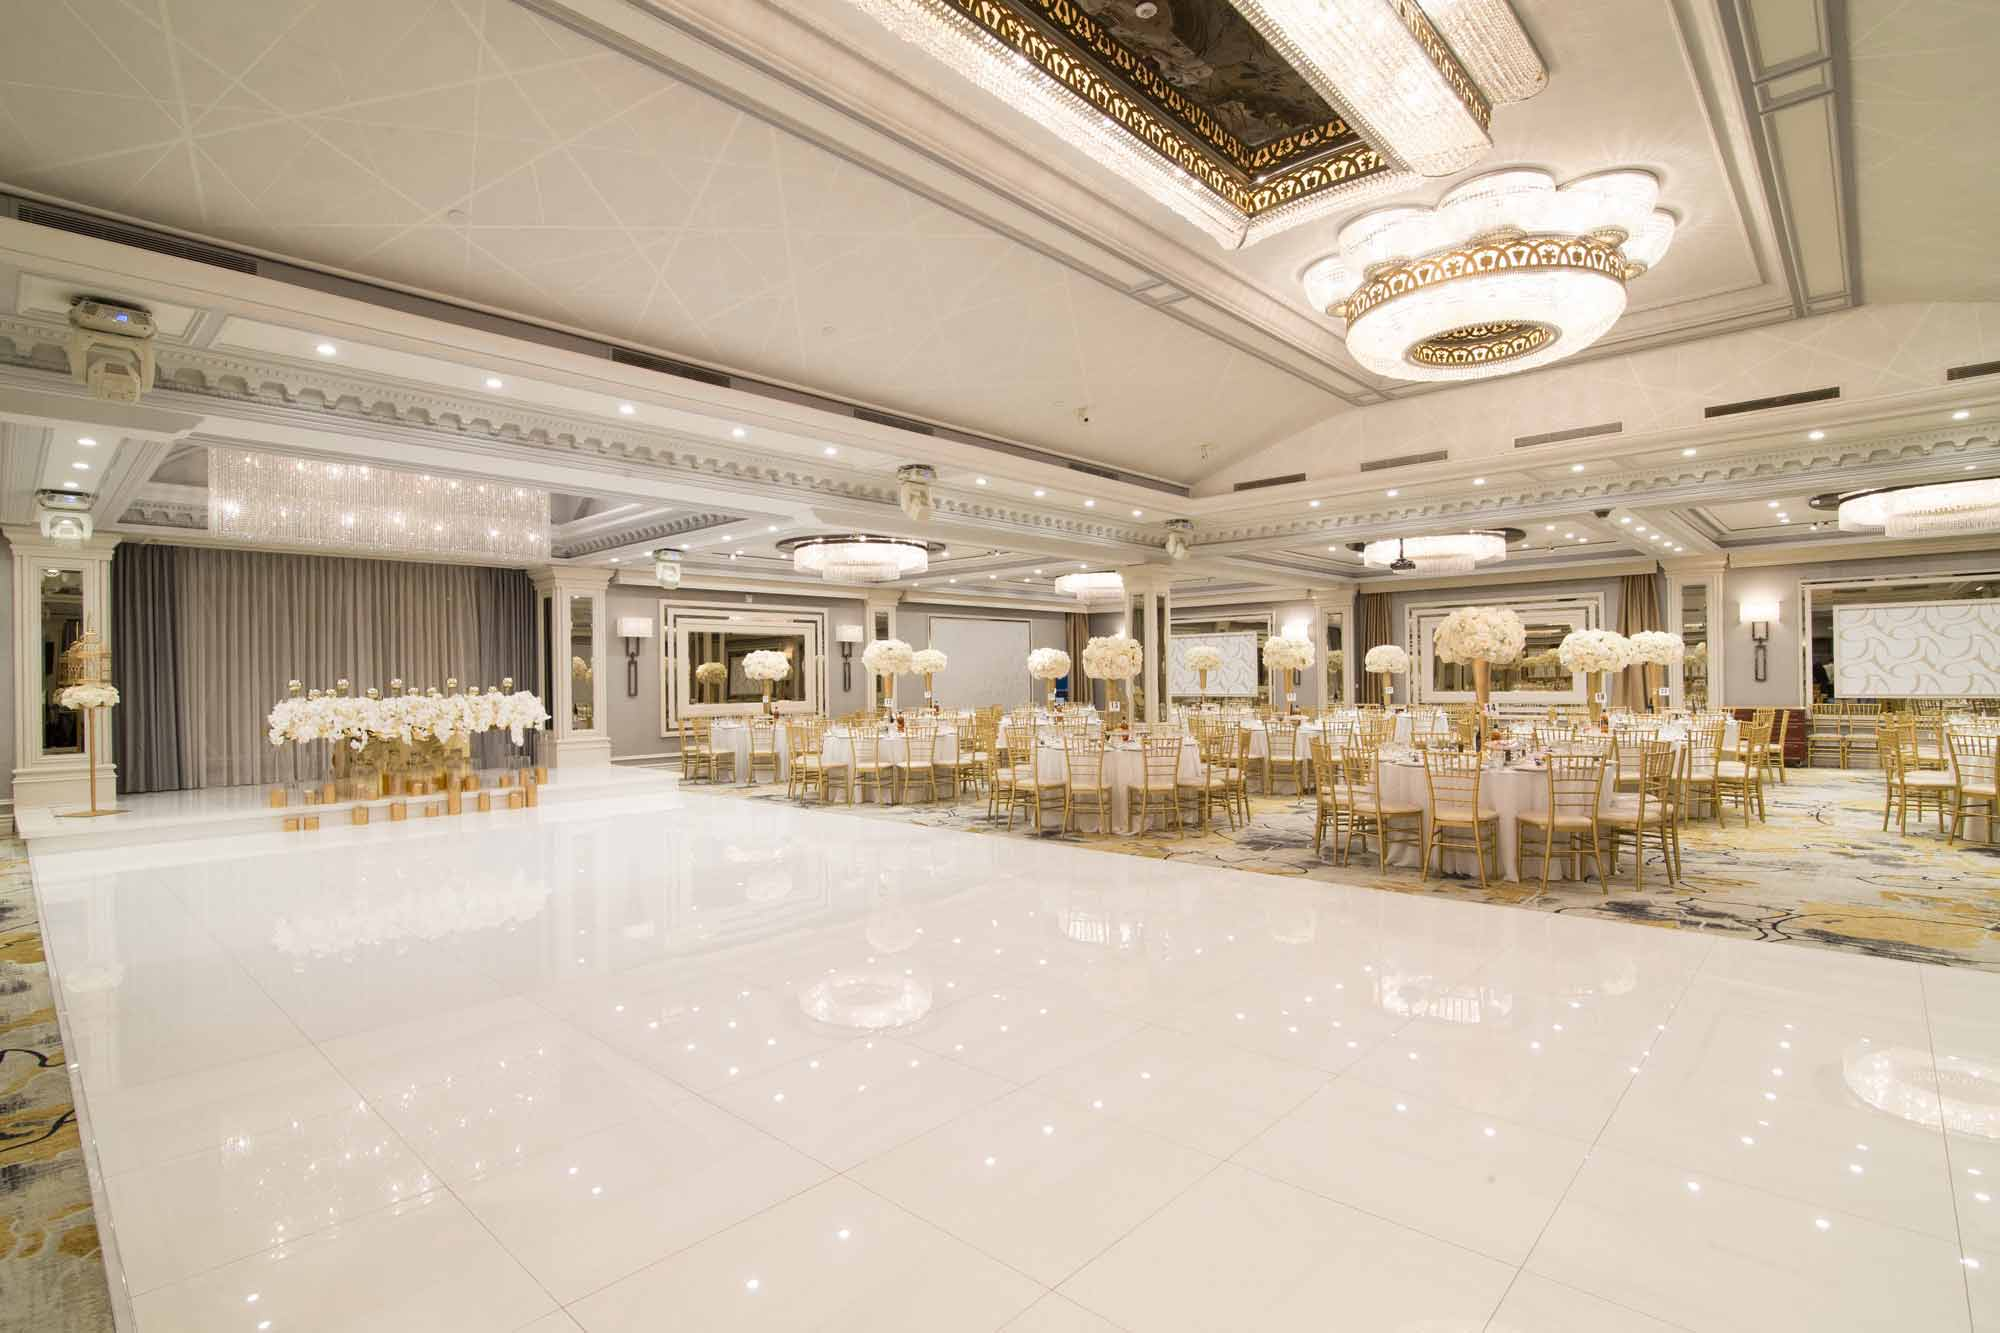 White Dance floor Interior of Glenoaks Banquet Hall in Glendale CA